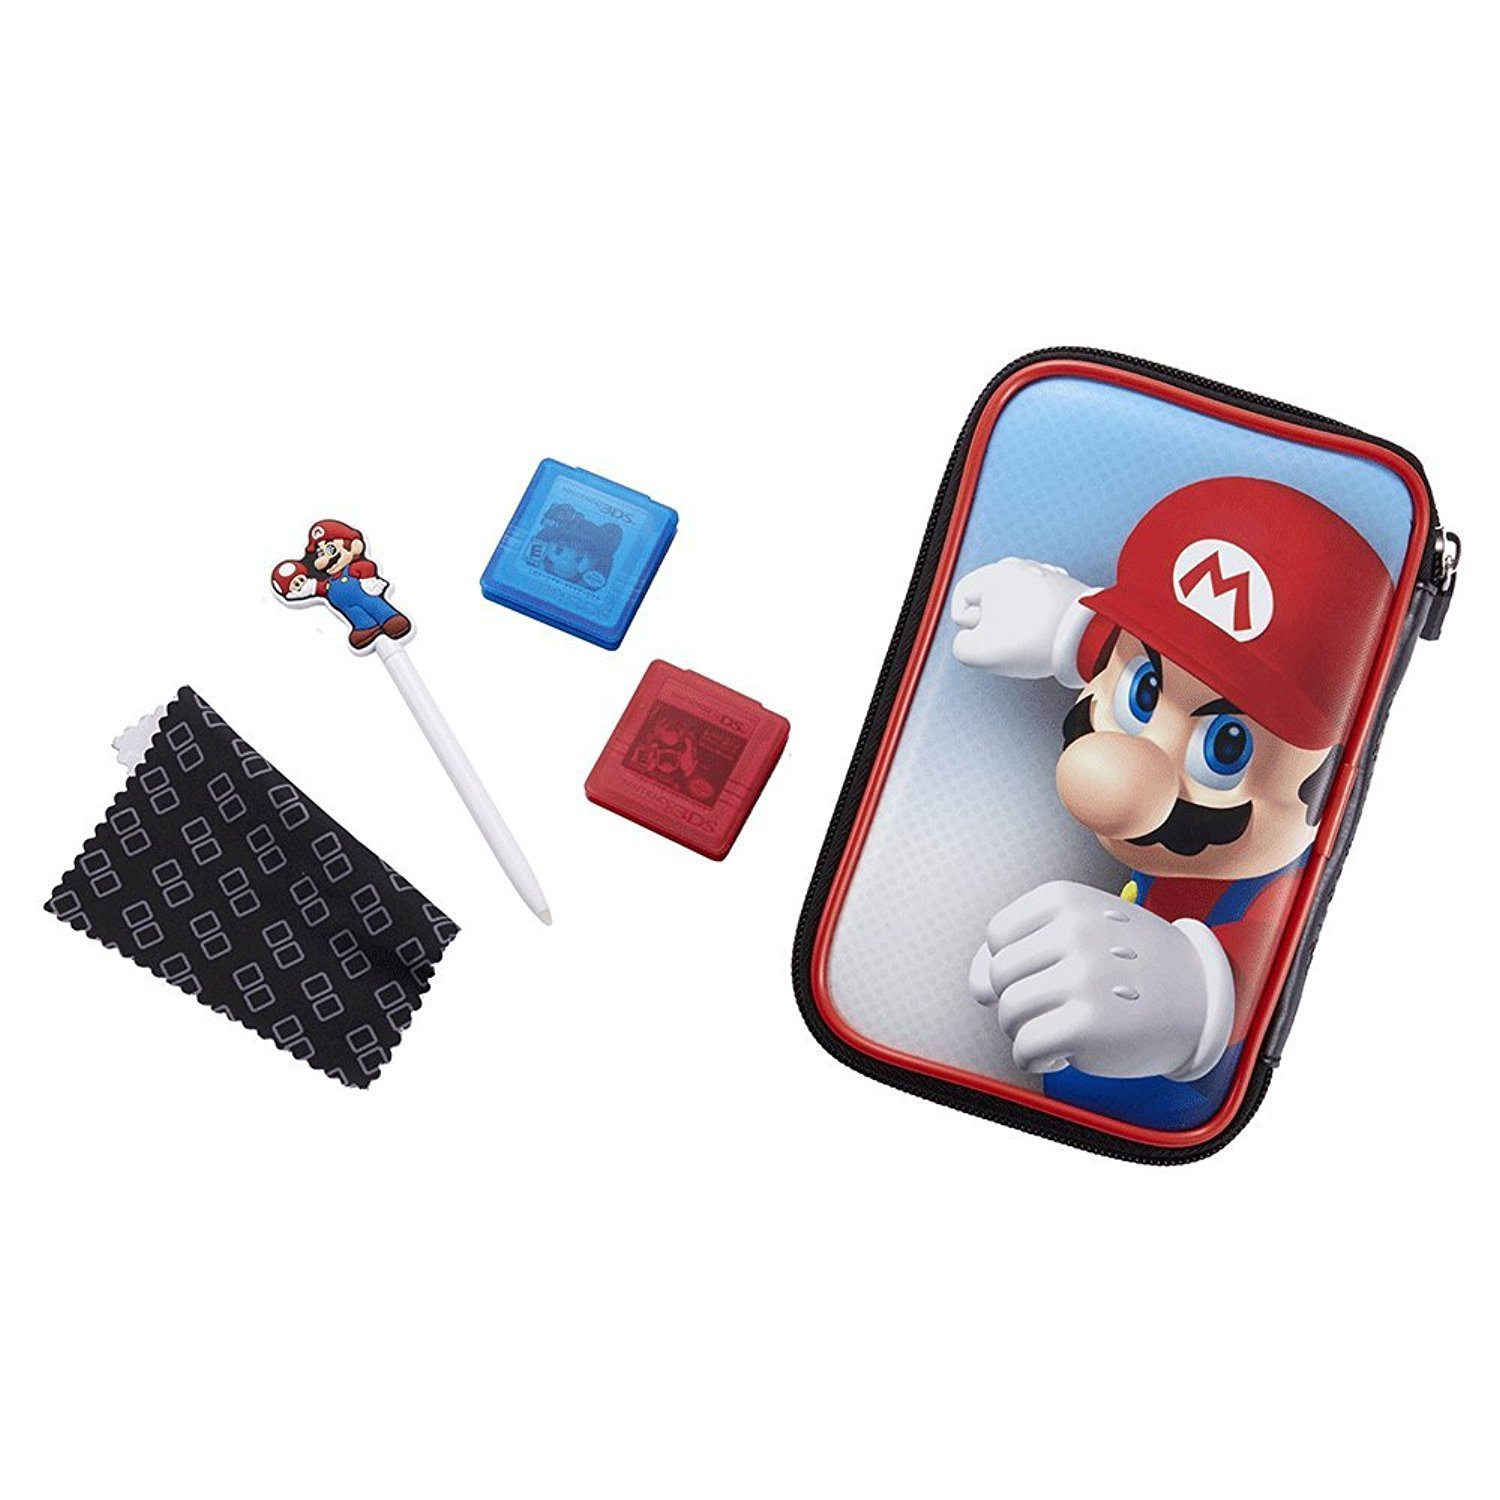 Official Nintendo New 3DS XL / 3DS XL - Accessory Set